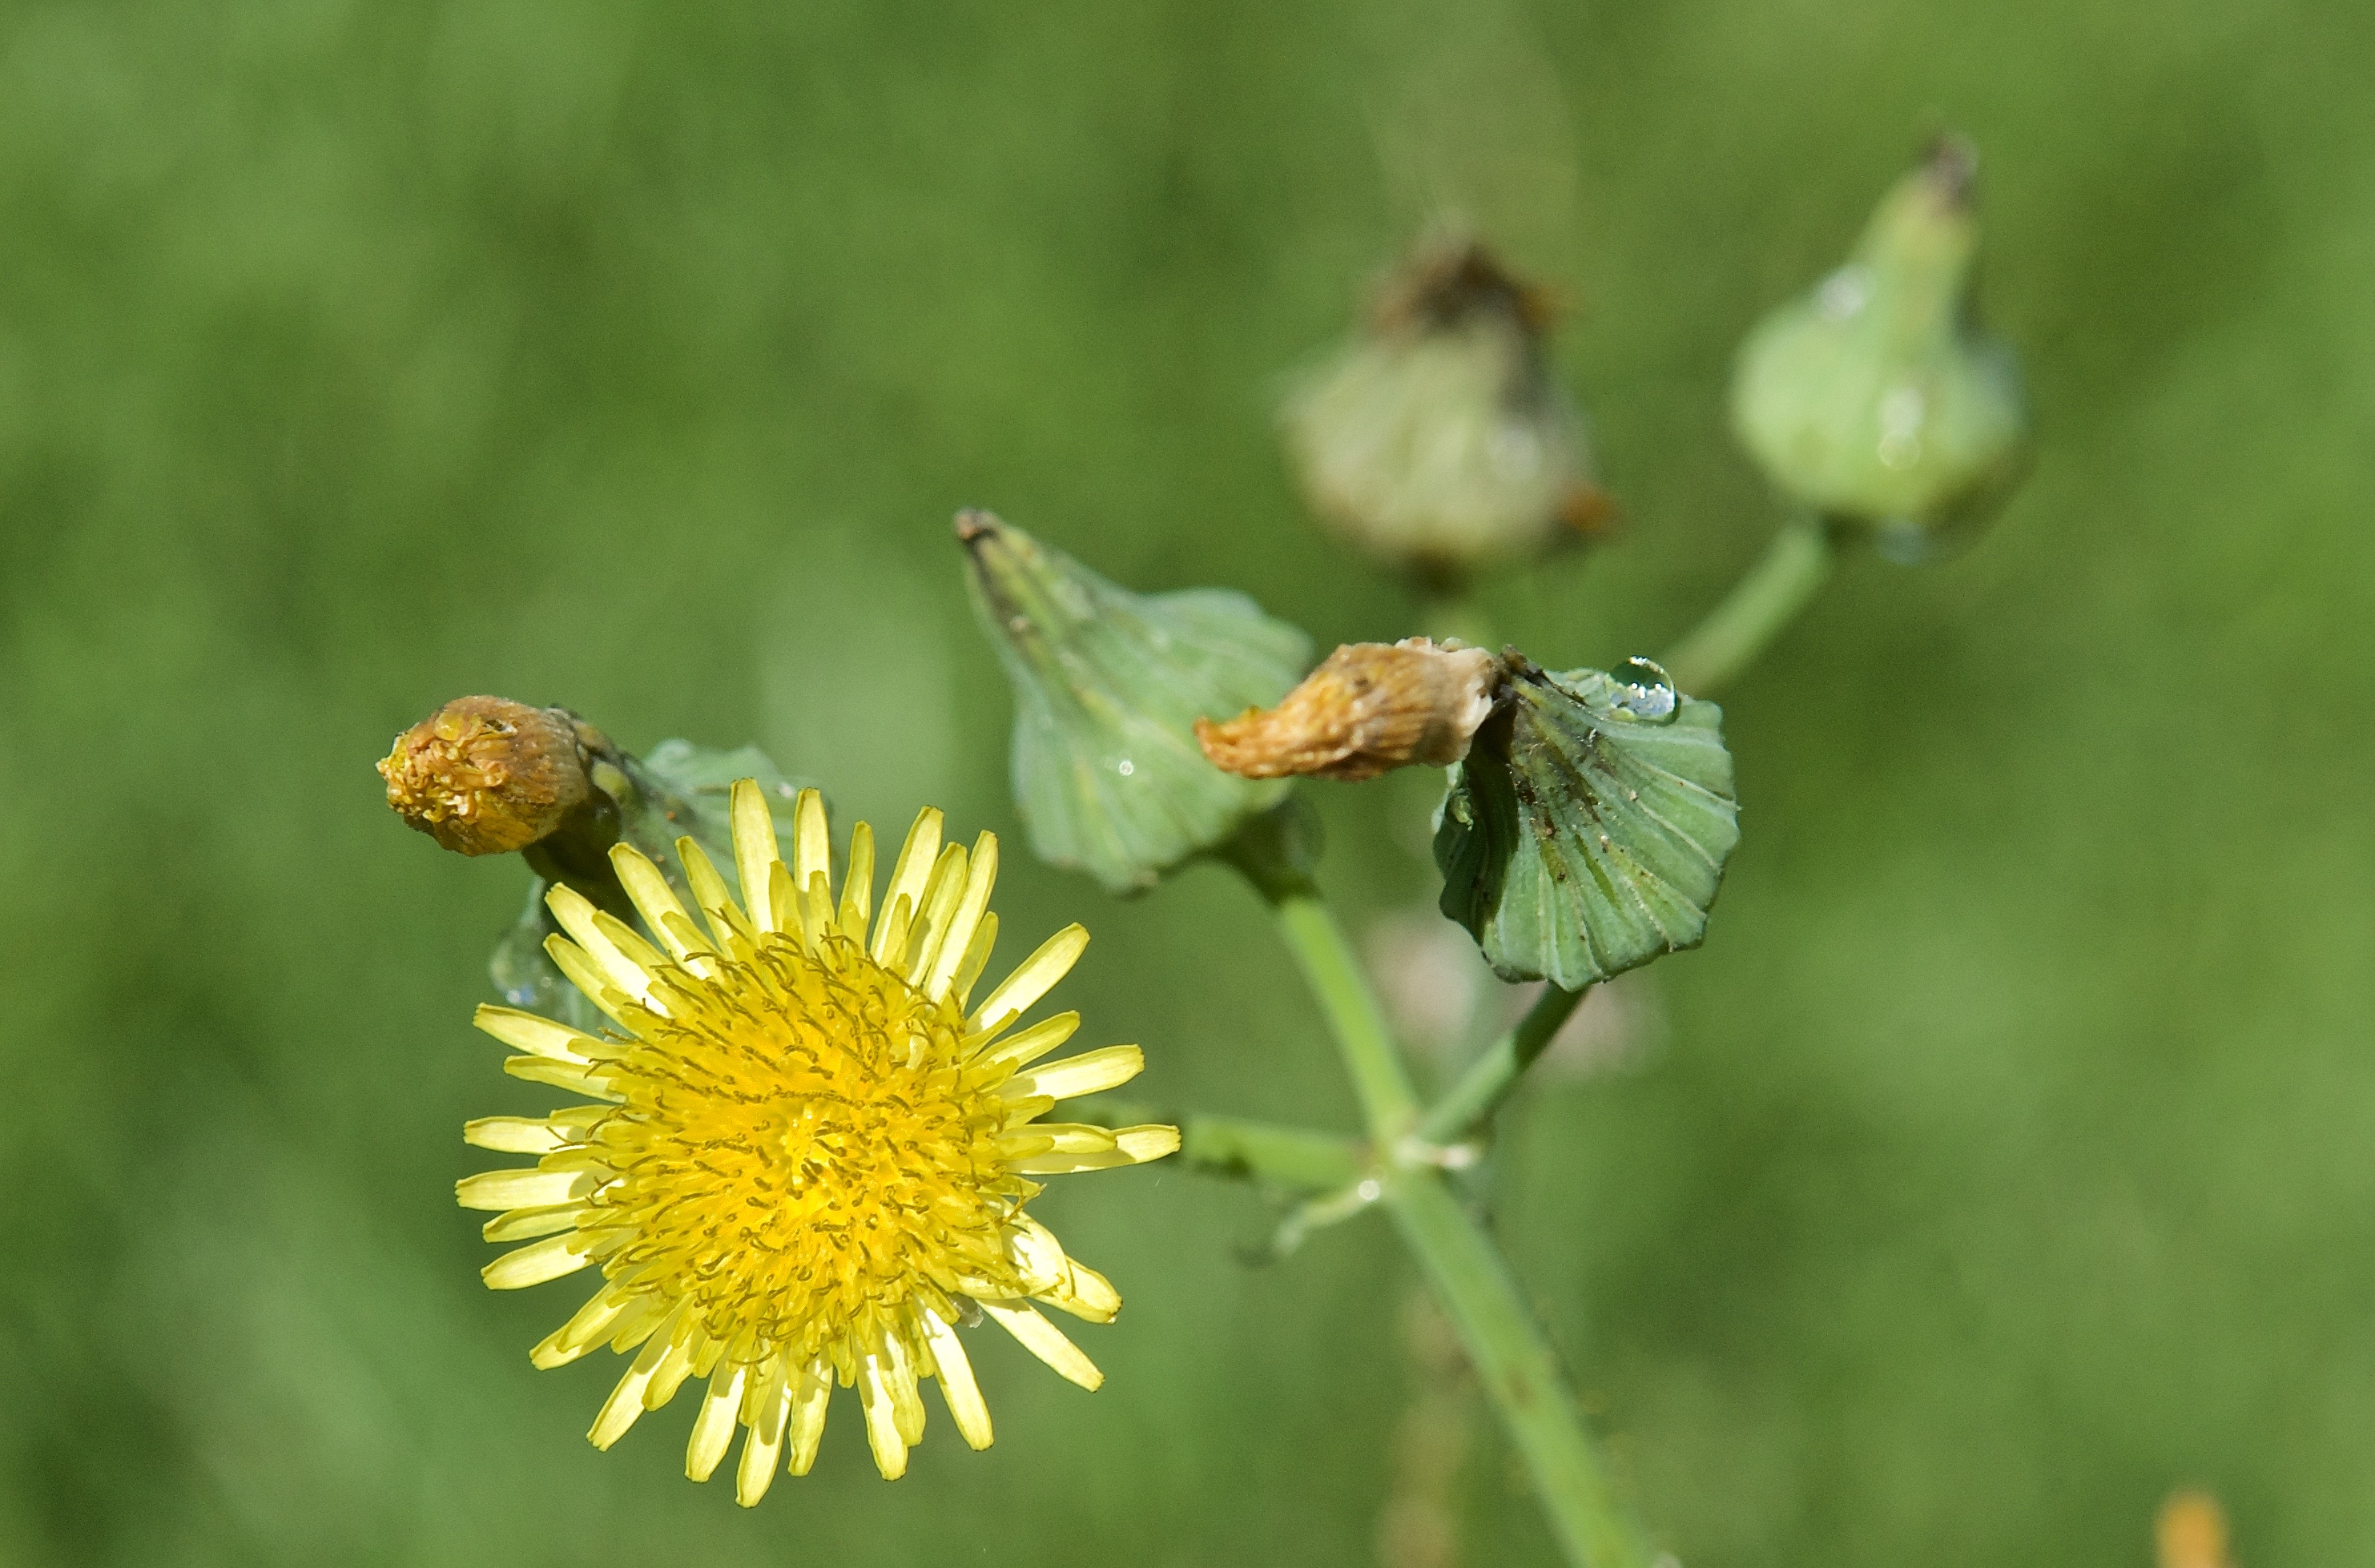 Spiny Sowthistle (Sonchus asper) (Introduced)